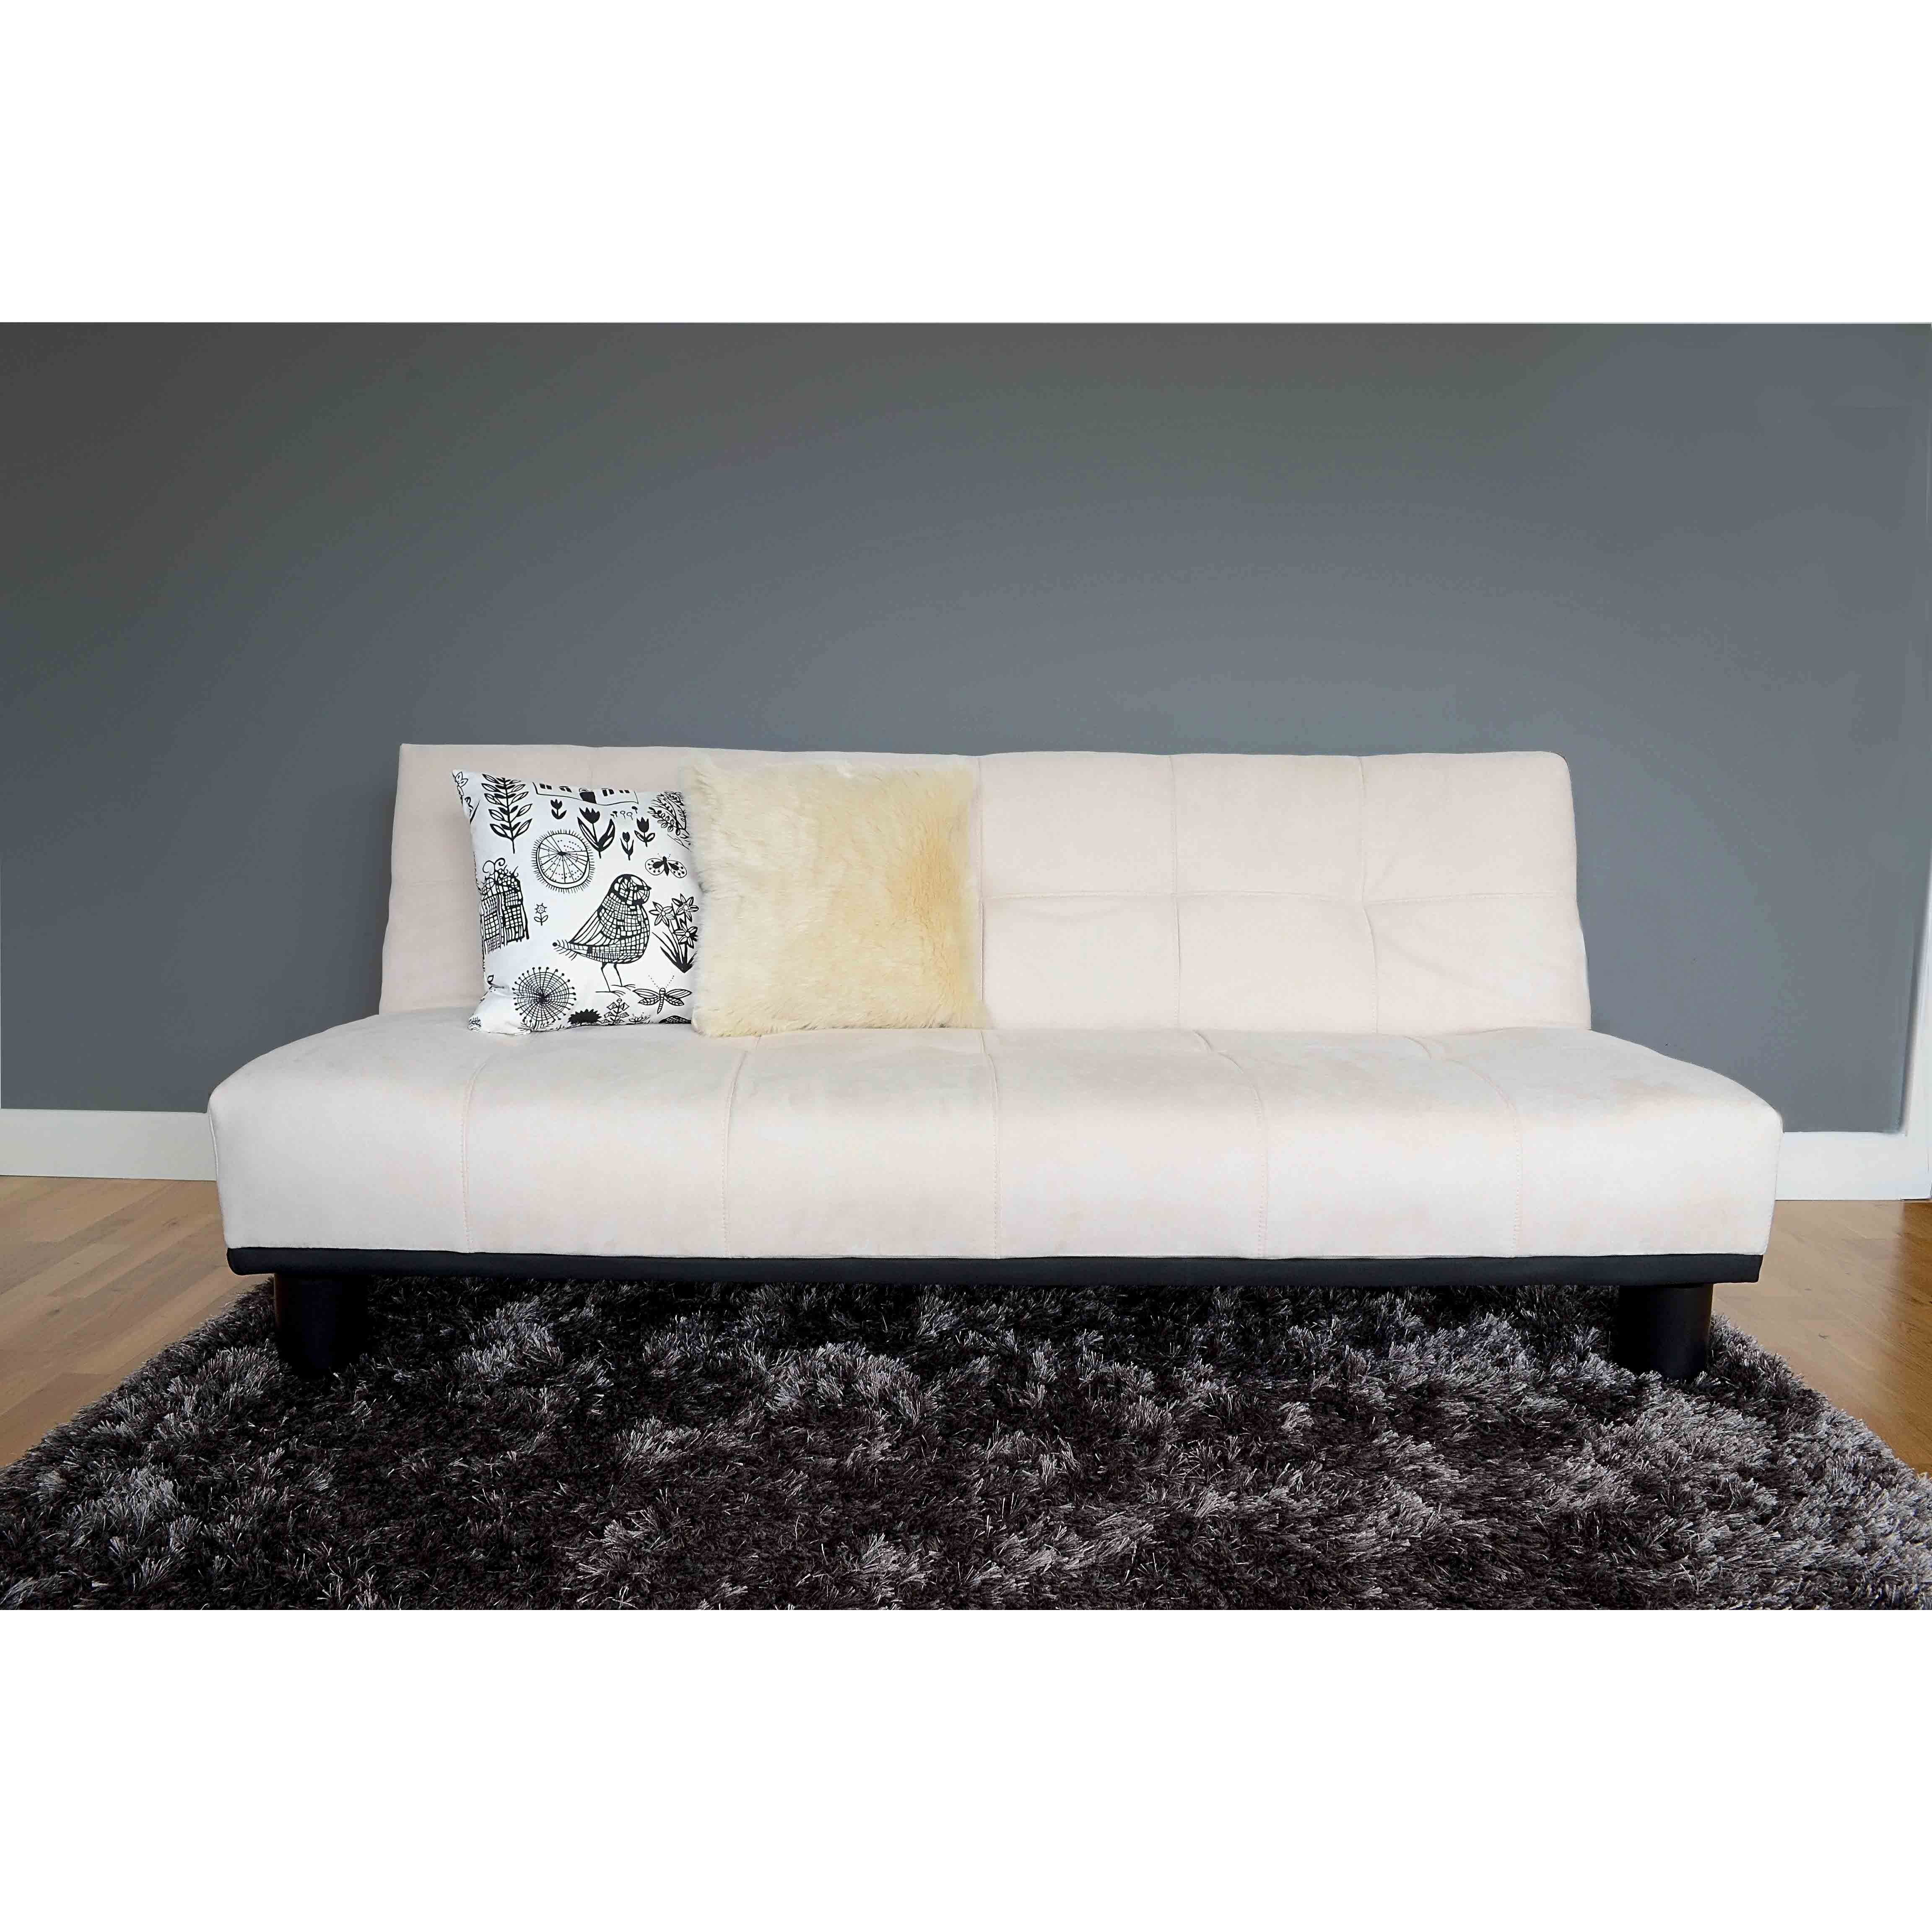 leader lifestyle 3 seater clic clac sofa bed reviews wayfair uk. Black Bedroom Furniture Sets. Home Design Ideas